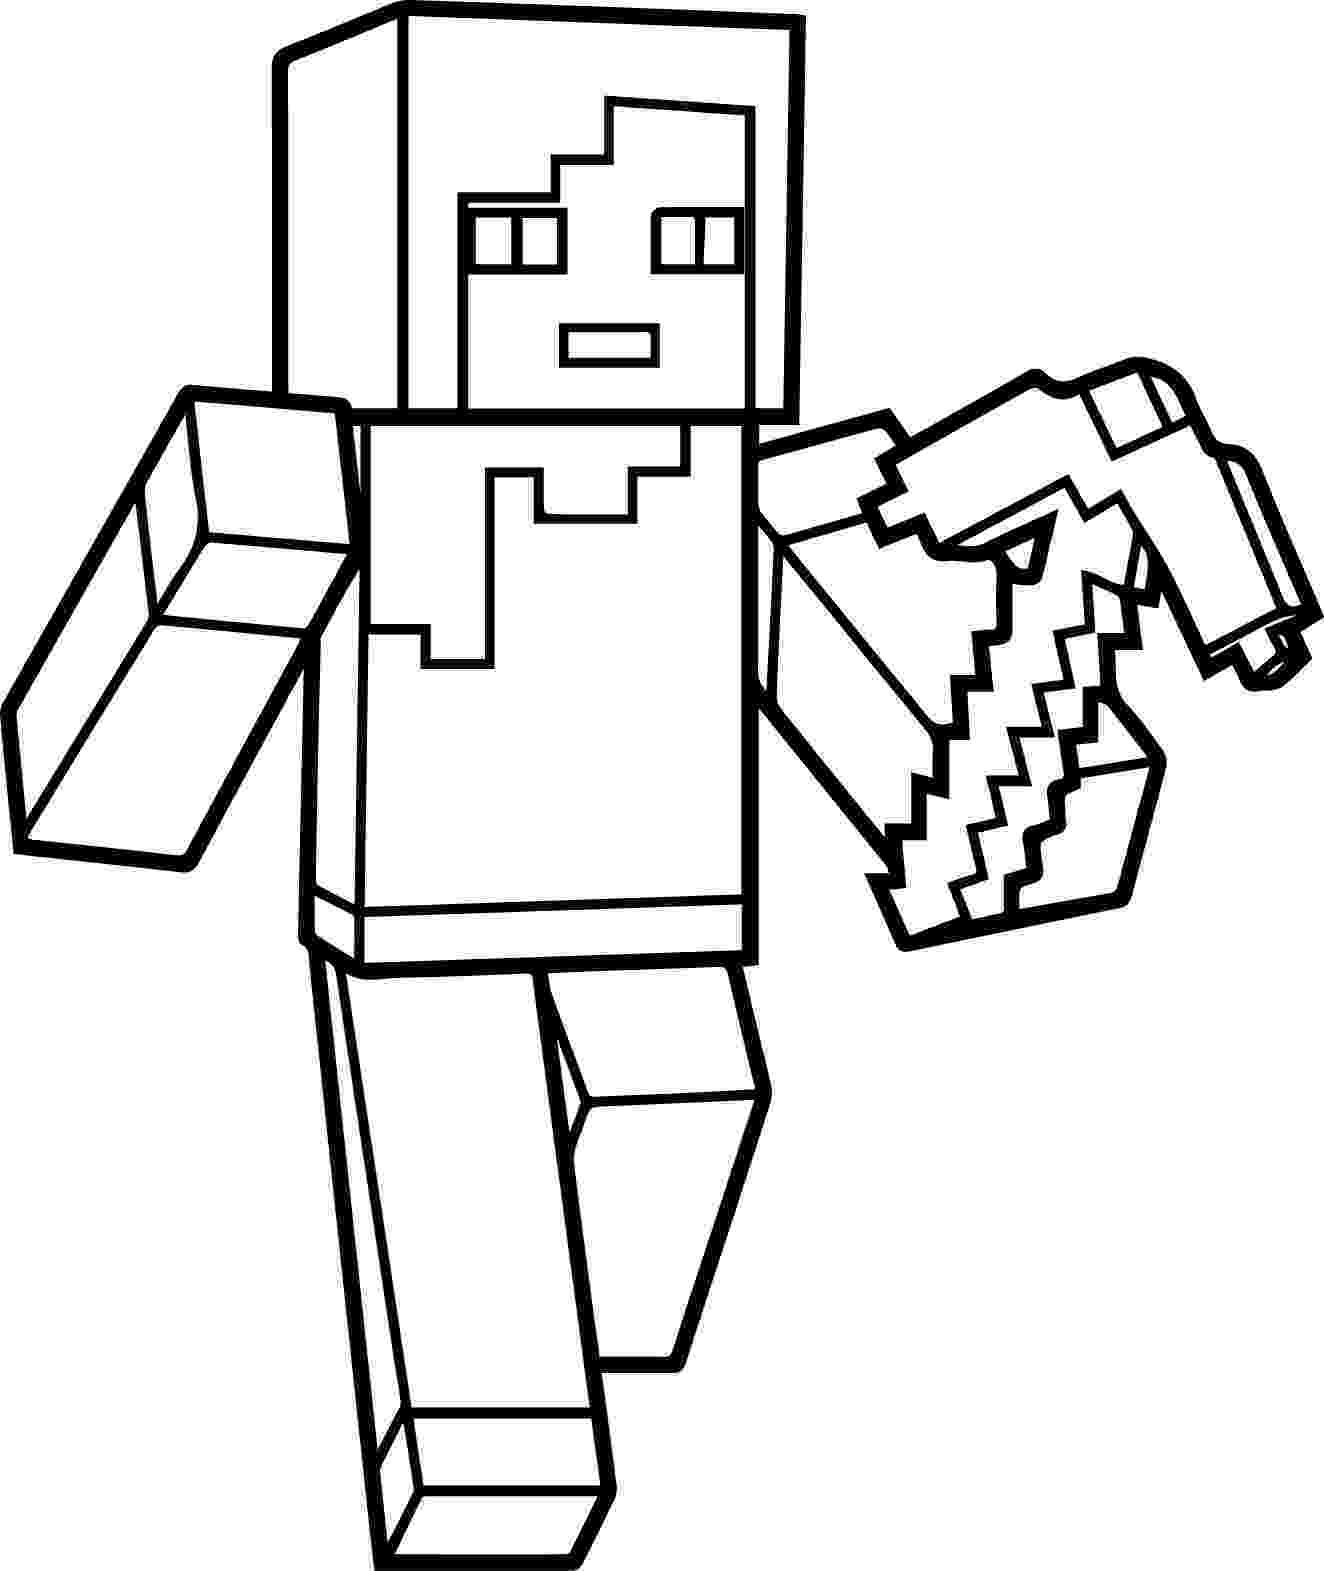 minecraft coloring pictures minecraft coloring pages best coloring pages for kids coloring pictures minecraft